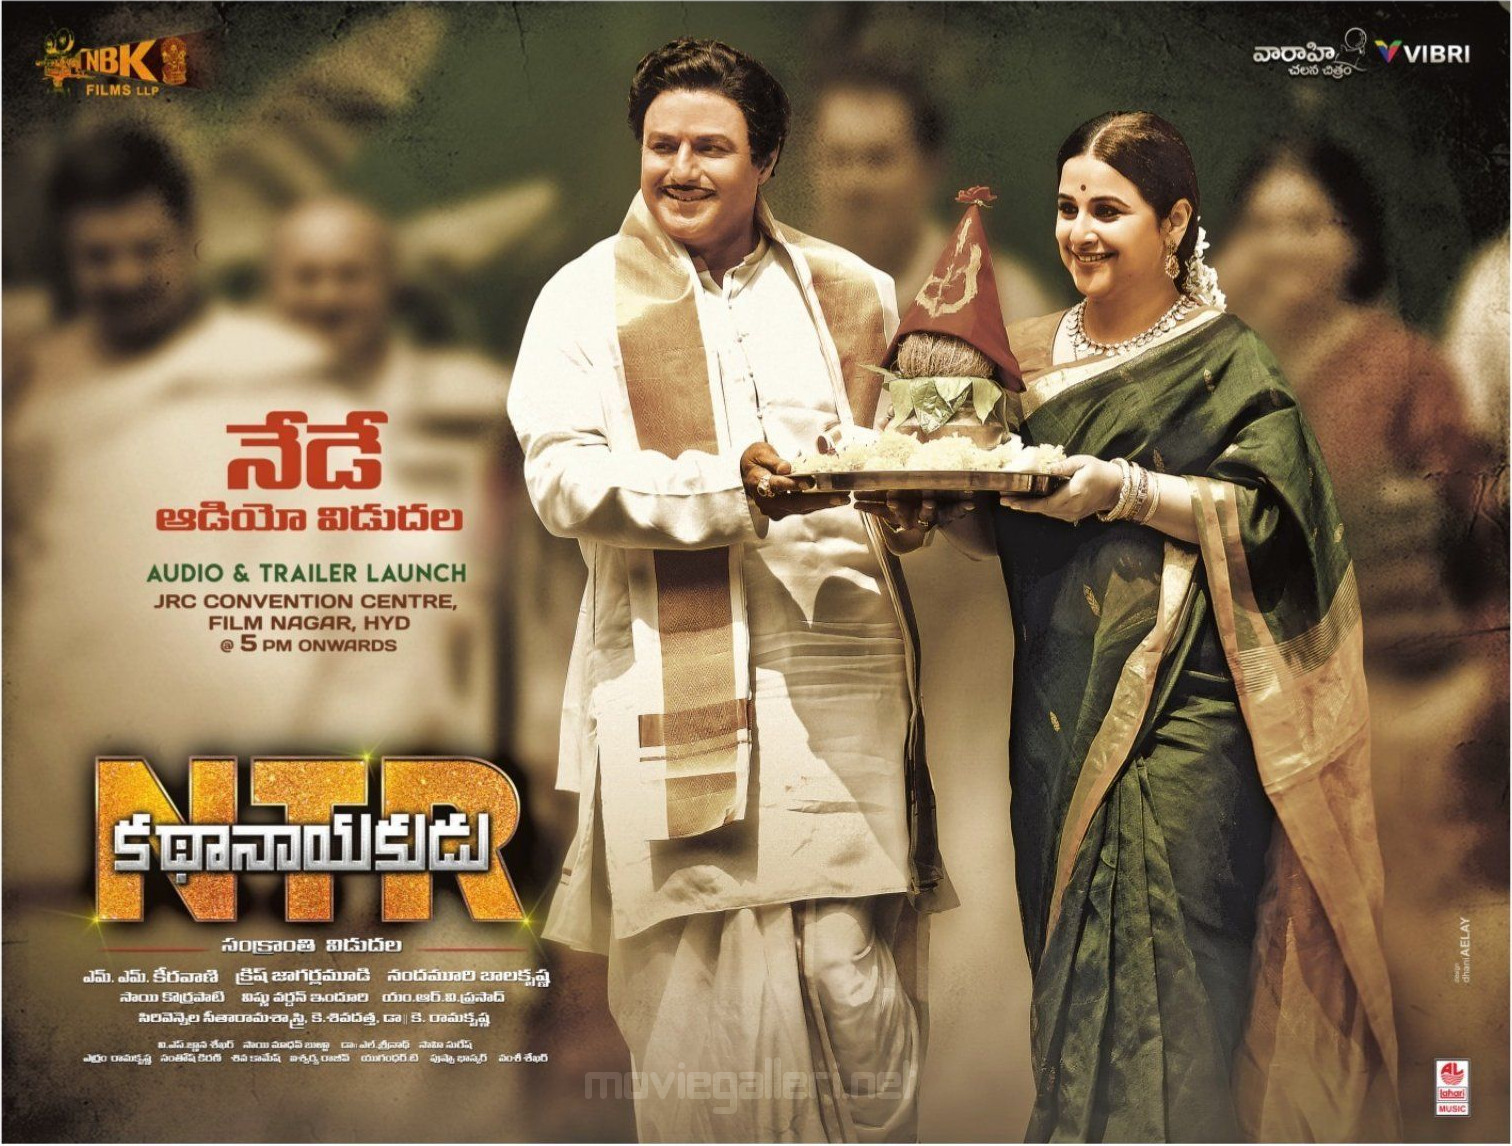 Balakrishna, Vidya Balan in NTR Biopic Audio Launch Today Posters